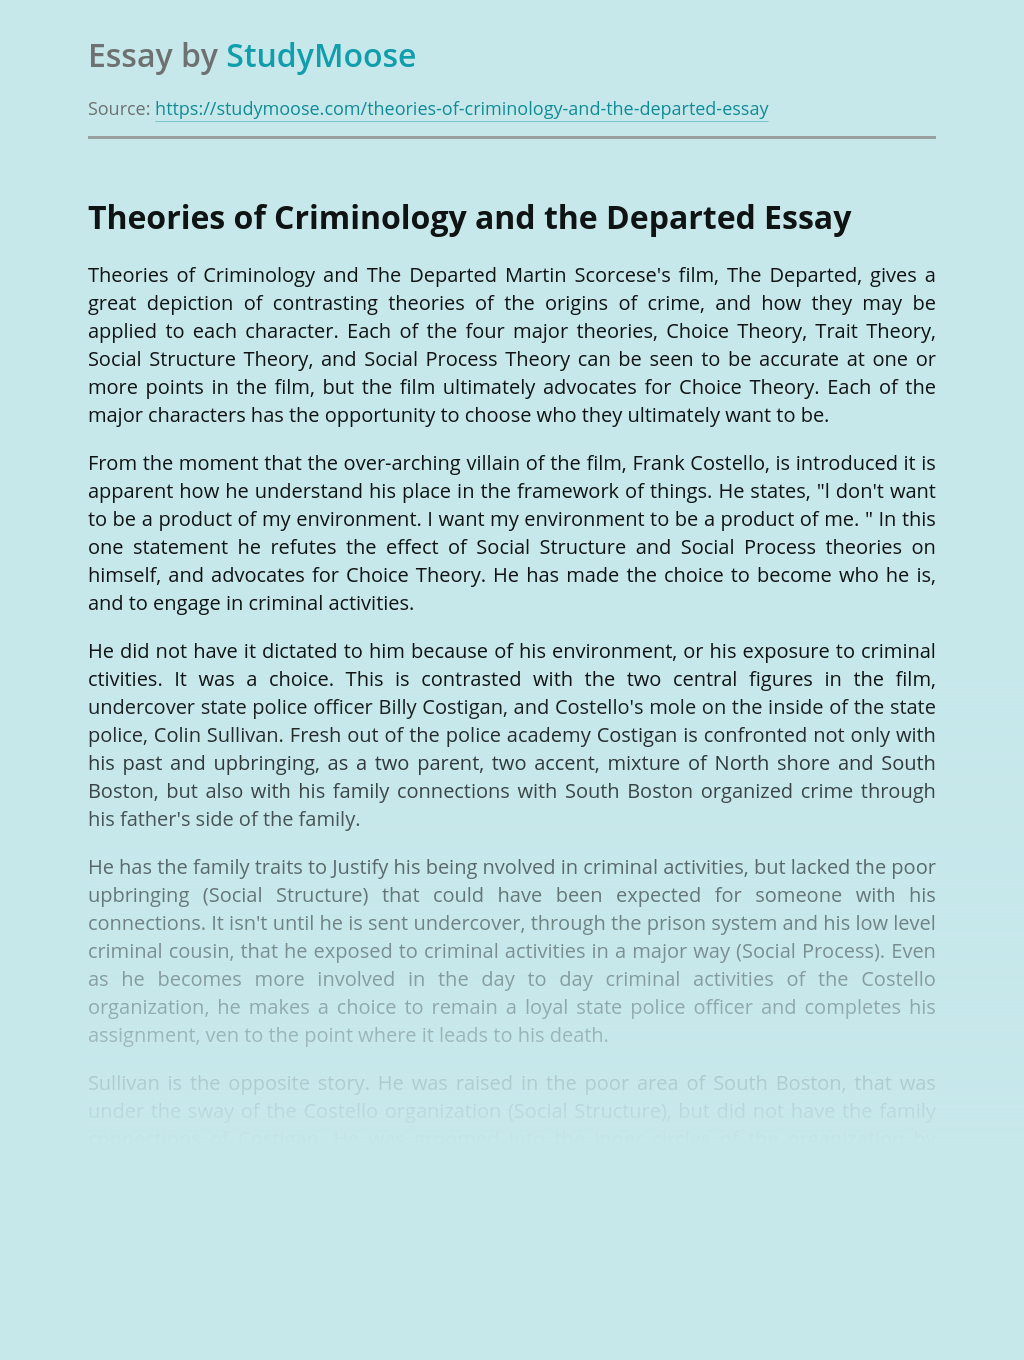 Theories of Criminology and the Departed